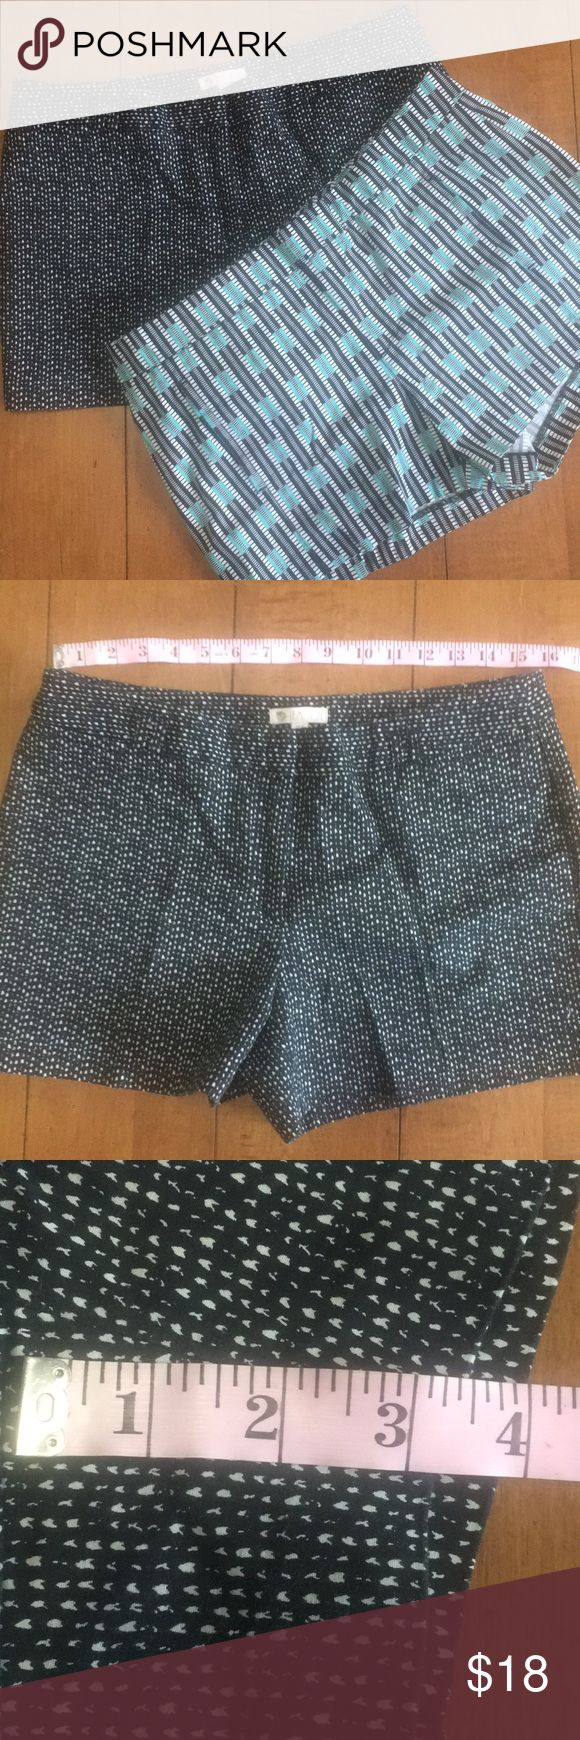 2 pair of shorts size 10 Gap size 10  Lila Rose size 10  See pictures for measurements  Smoke free and pet free This is for 2 shorts Shorts